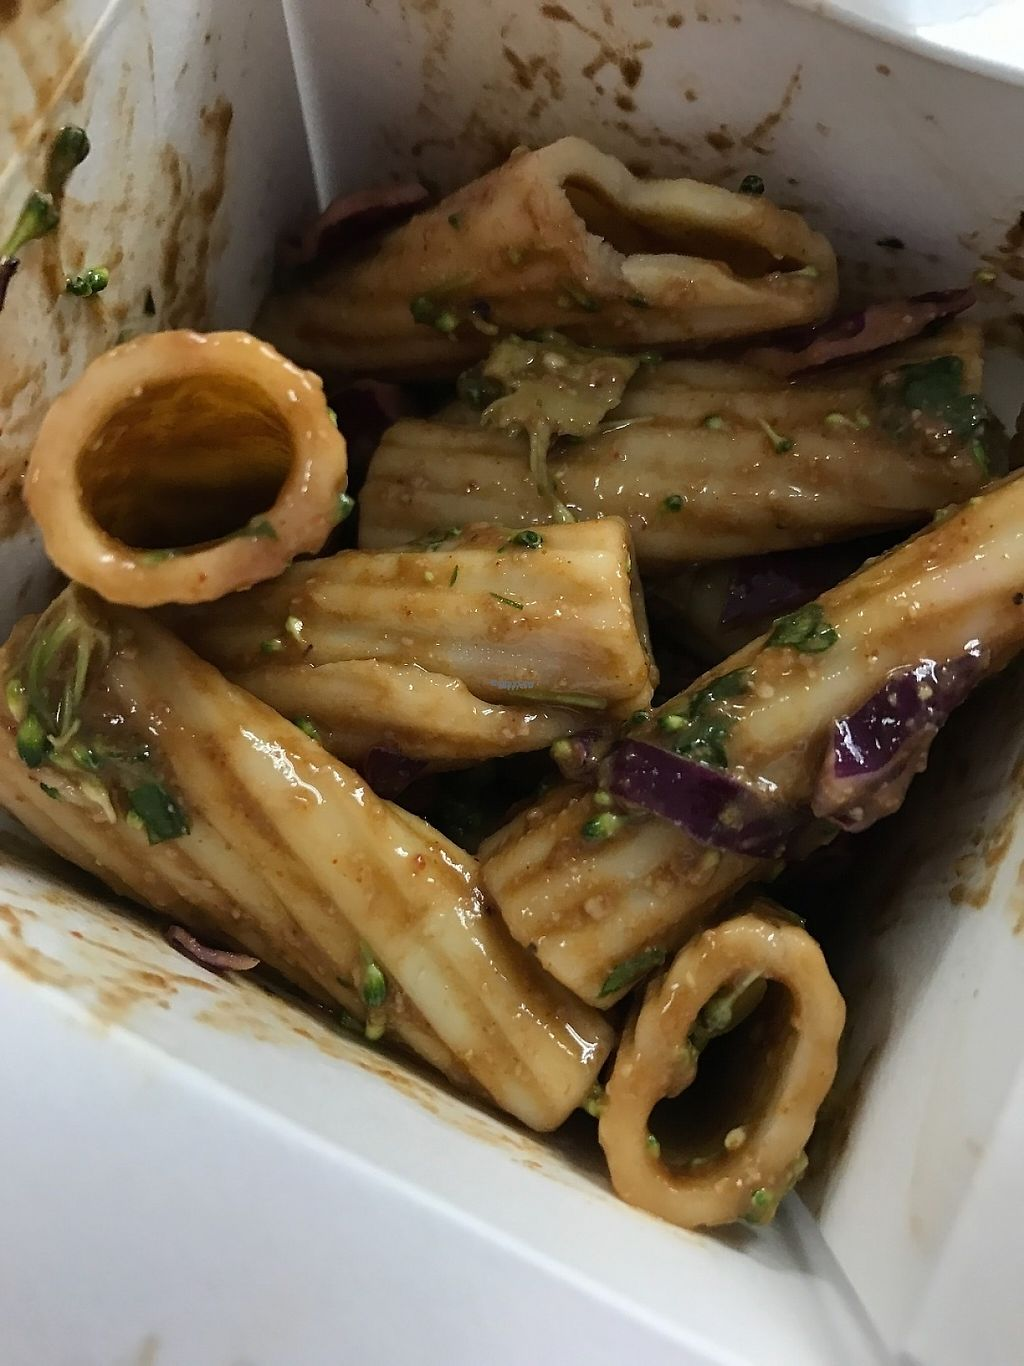 "Photo of Desert Roots Kitchen  by <a href=""/members/profile/Tigra220"">Tigra220</a> <br/>Balsamic Habanero Rigatoni pasta salad (carry out) <br/> March 10, 2017  - <a href='/contact/abuse/image/9333/234744'>Report</a>"